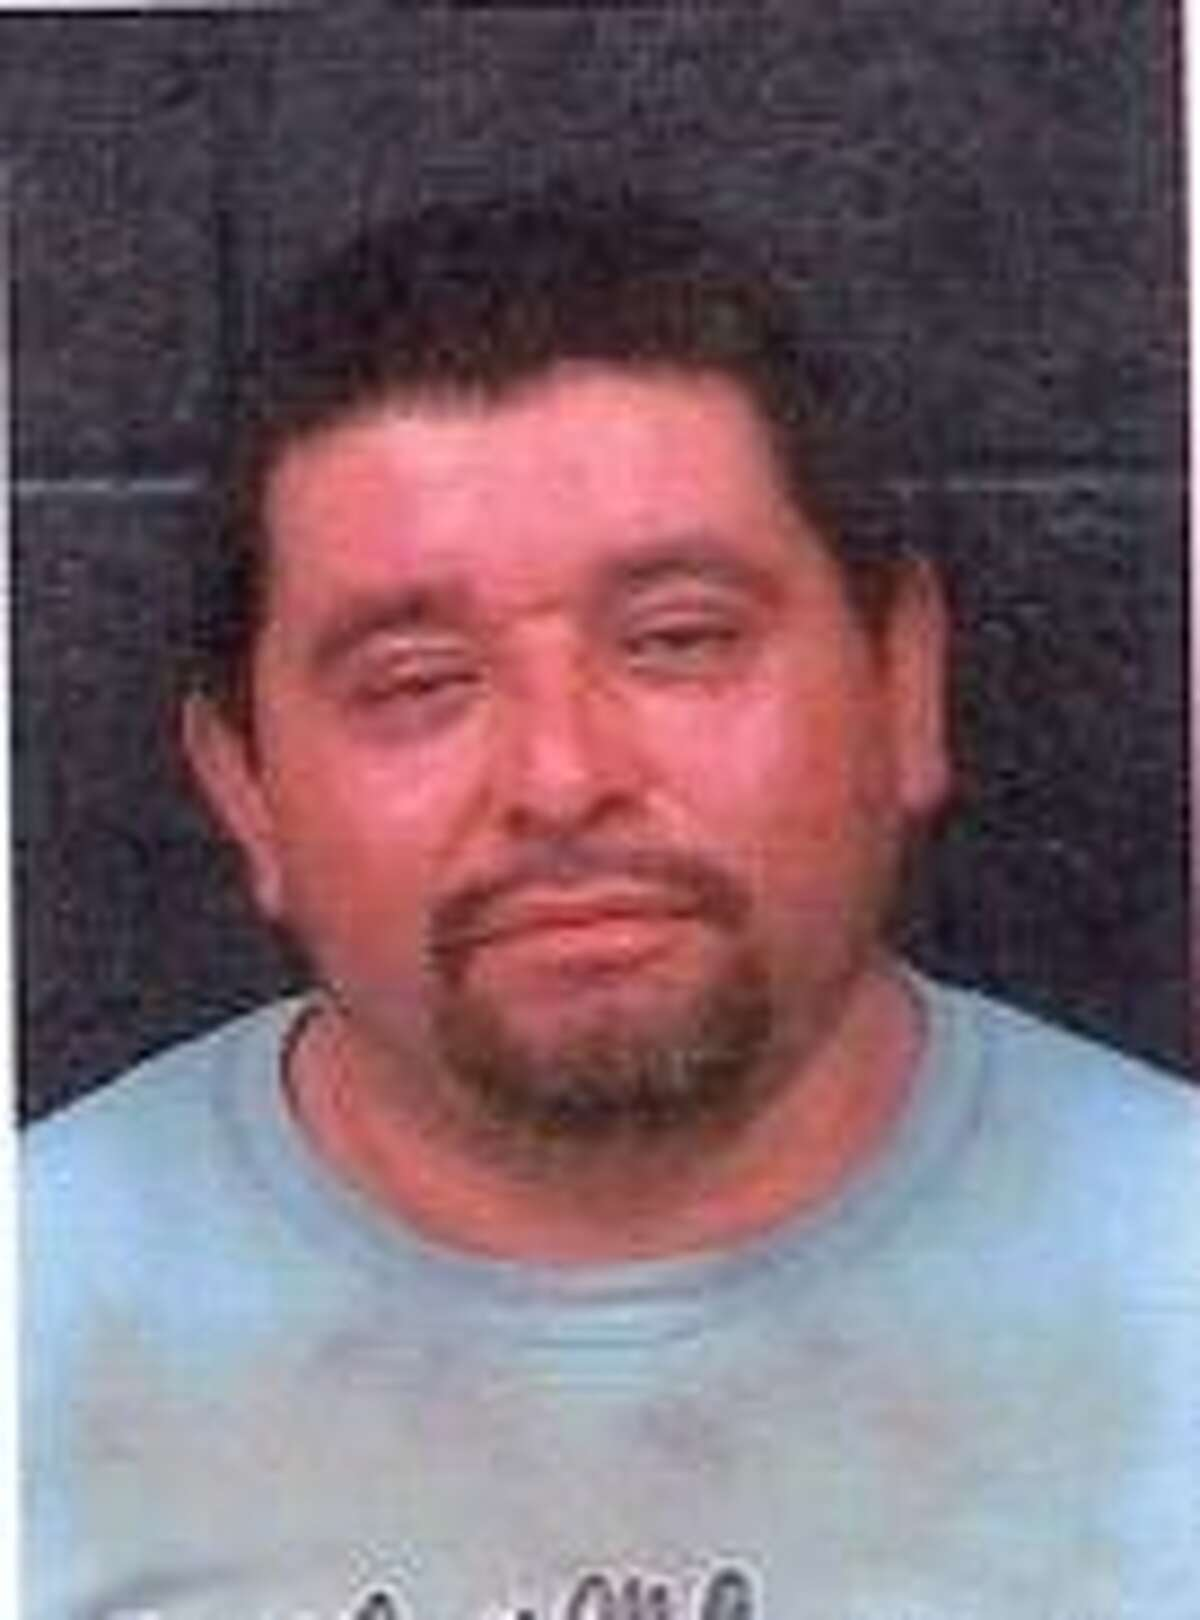 Wulfrano Zuniga Perez was charged with driving while intoxicated.